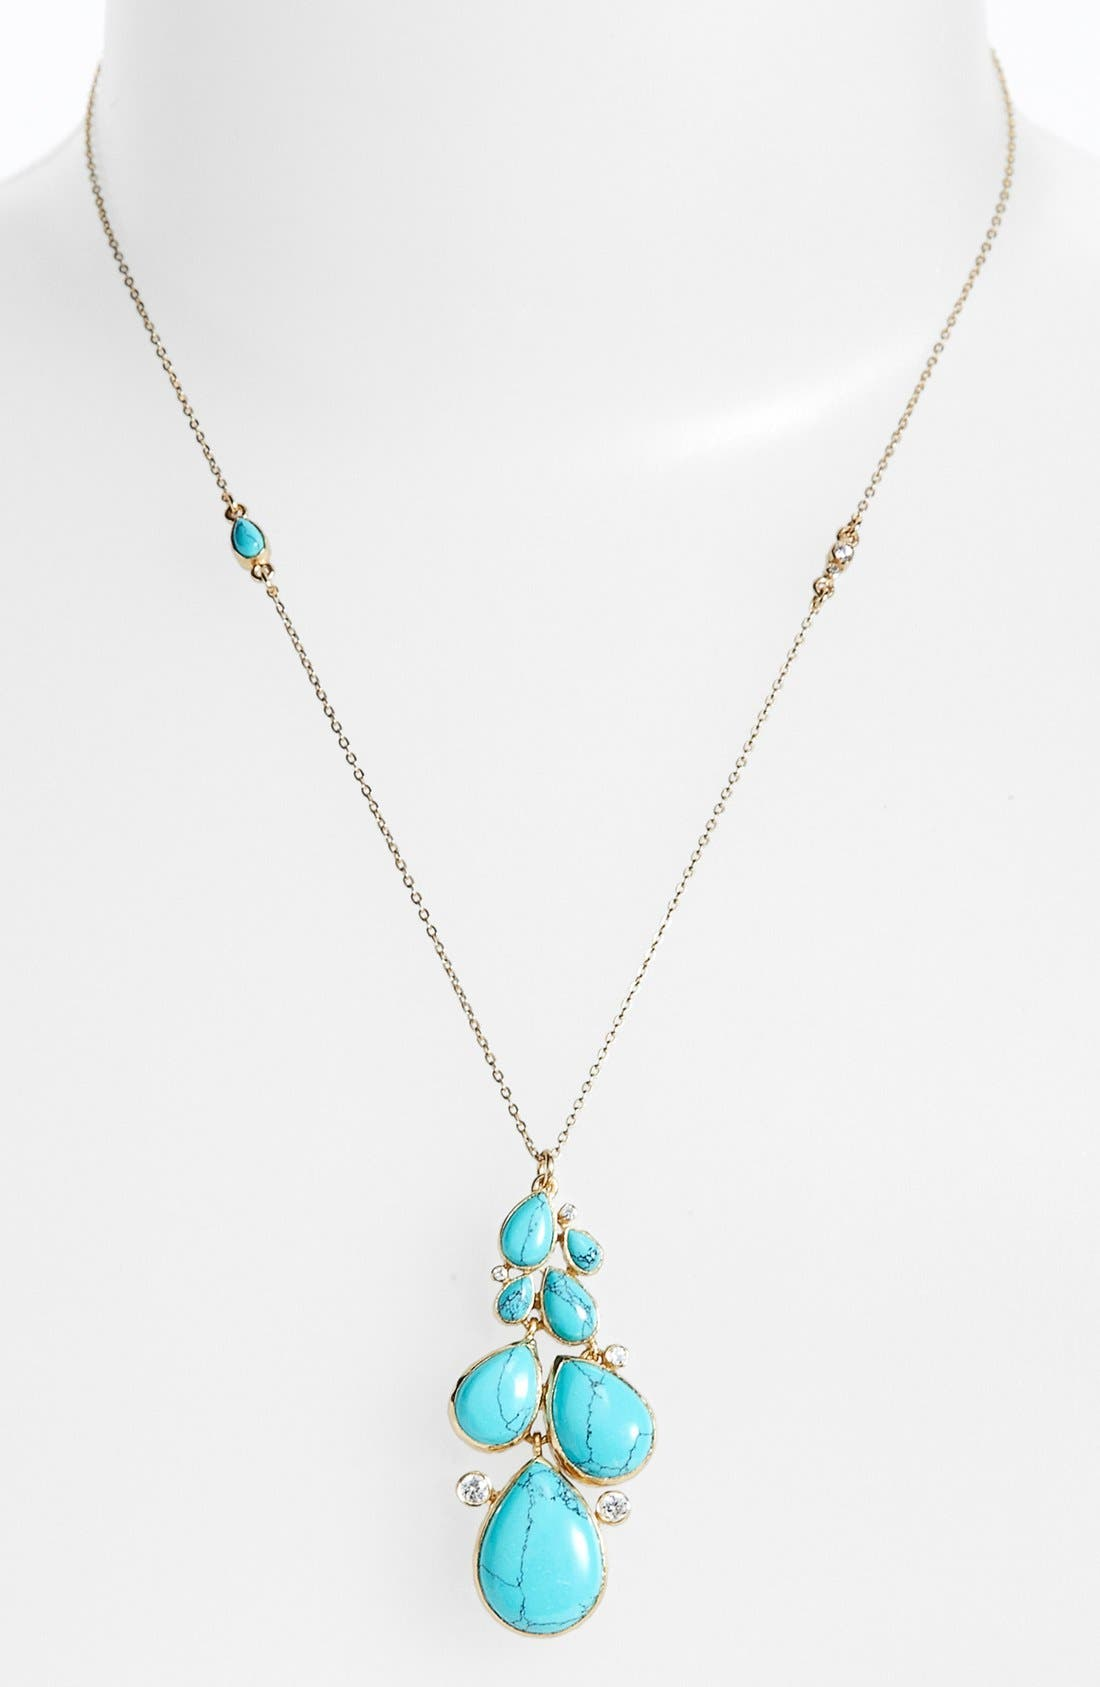 Main Image - Melinda Maria 'Regan' Pendant Necklace (Nordstrom Exclusive)